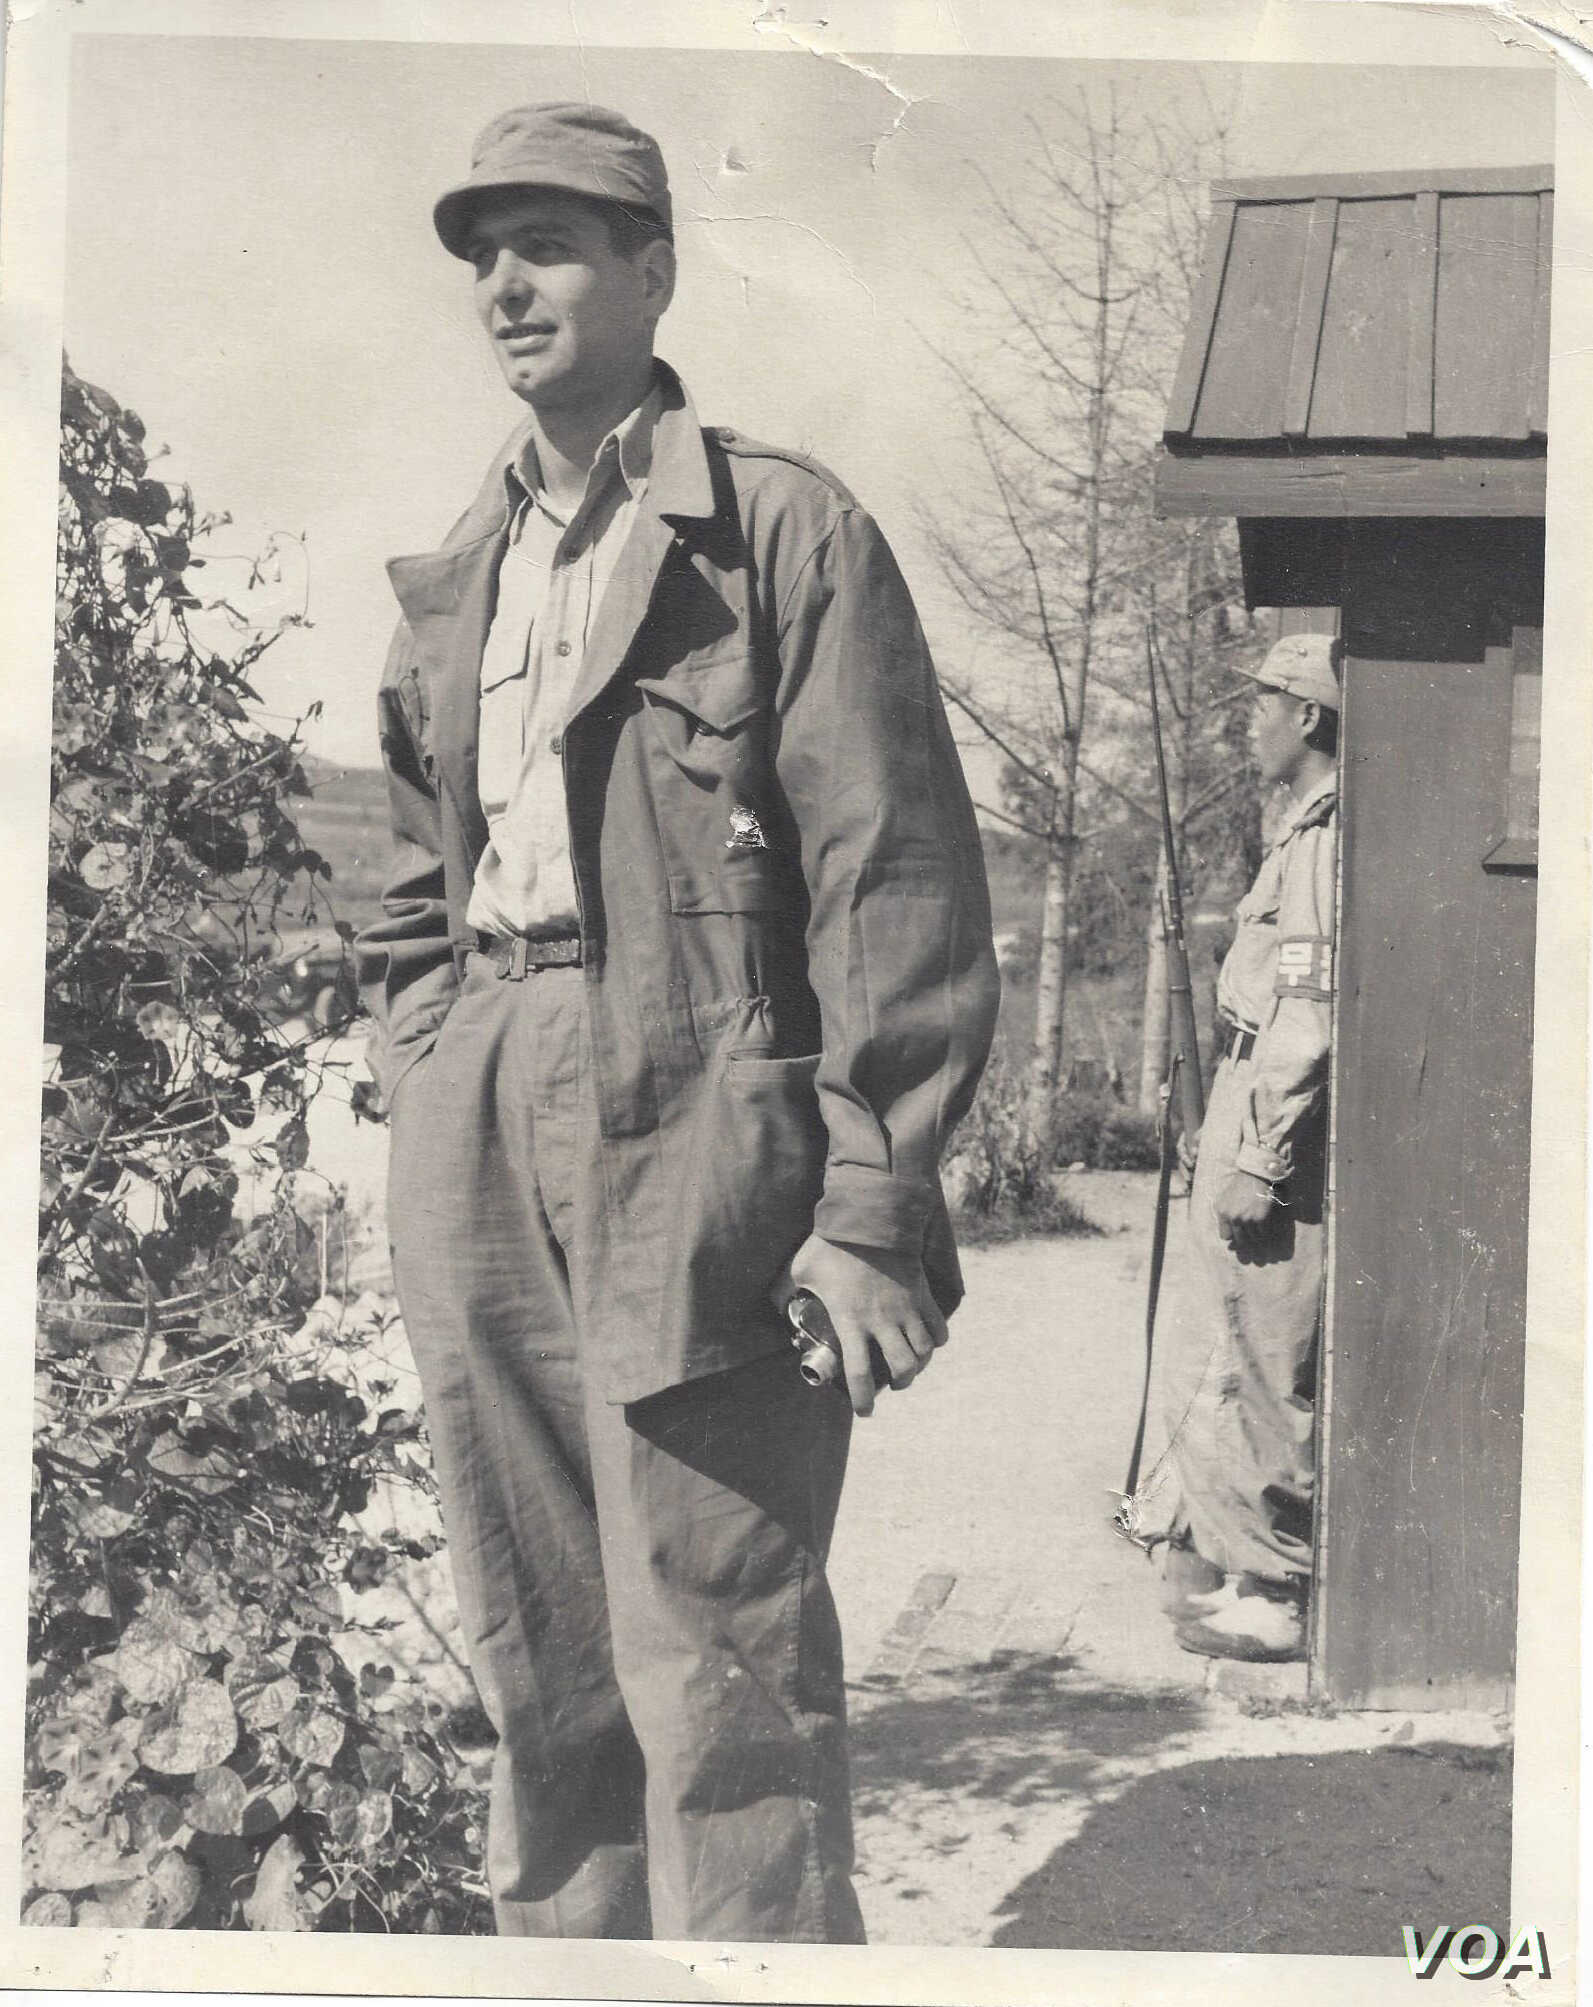 """Former VOA Correspondent Irwin """"Sonny"""" Fox at Panmunjom, Korea, June, 1953, on the border of North and South Korea and where is now deserted and in the DMZ. (Courtesy: Sonny Fox)"""